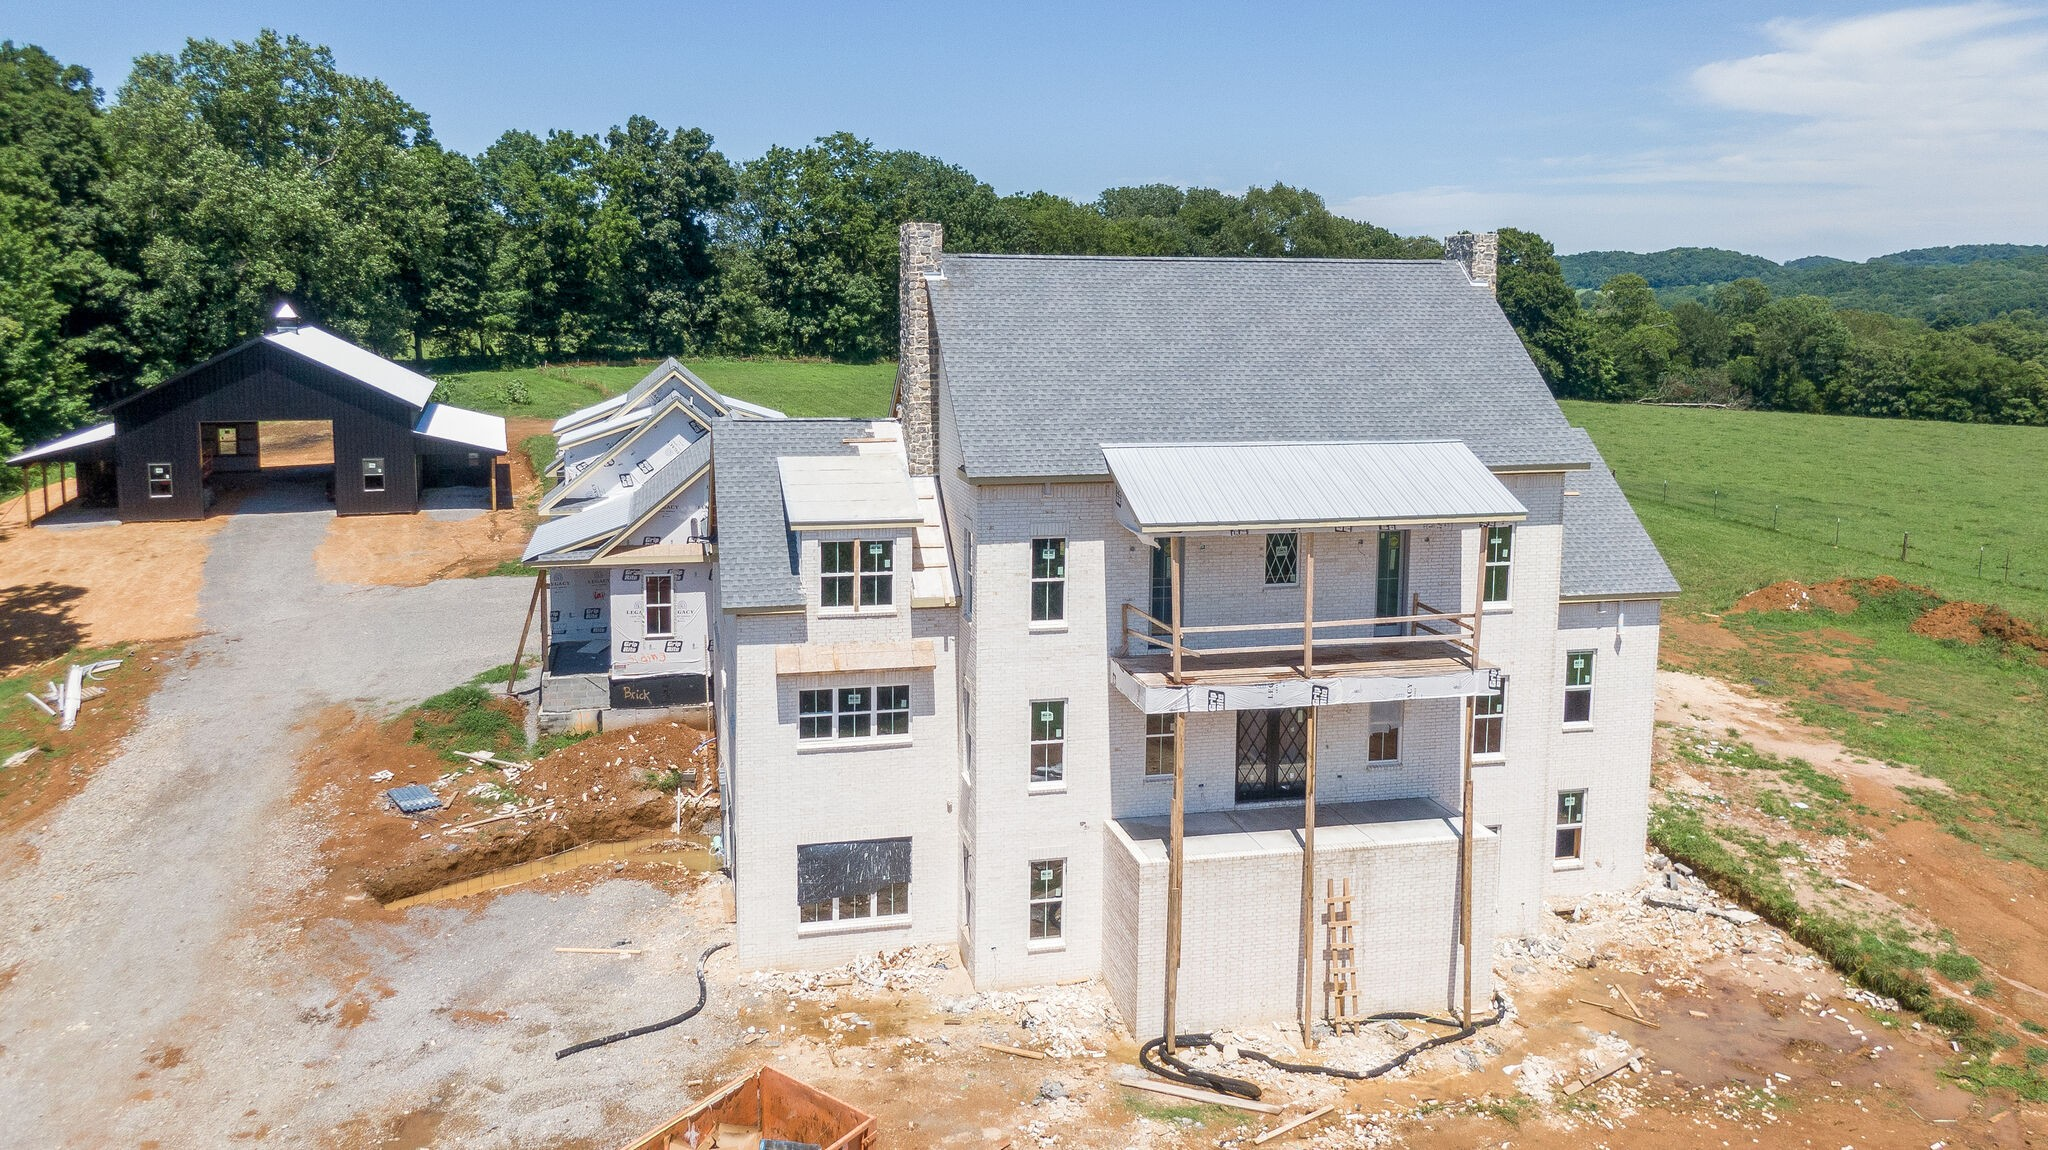 Incredible estate on 15 acres! Luxurious 10,000+ sq.ft. home full of amenities: 5 beds, 8.5 baths, 2 offices, movie theater, billiard room, bonus room w/wet bar, bunk room, basement kitchen & bar, unfinished gym, safe room, elevator, 4 car garage, balcony overlooking pool, black 64x60 barn, pond. Best views in Williamson Co! Kitchen will feature 2 islands and 2 dishwashers. Builder provides $120k pool allowance. Includes separate 5 acre tract w/5 bed perk site. Hurry & pick finishes w/designer!